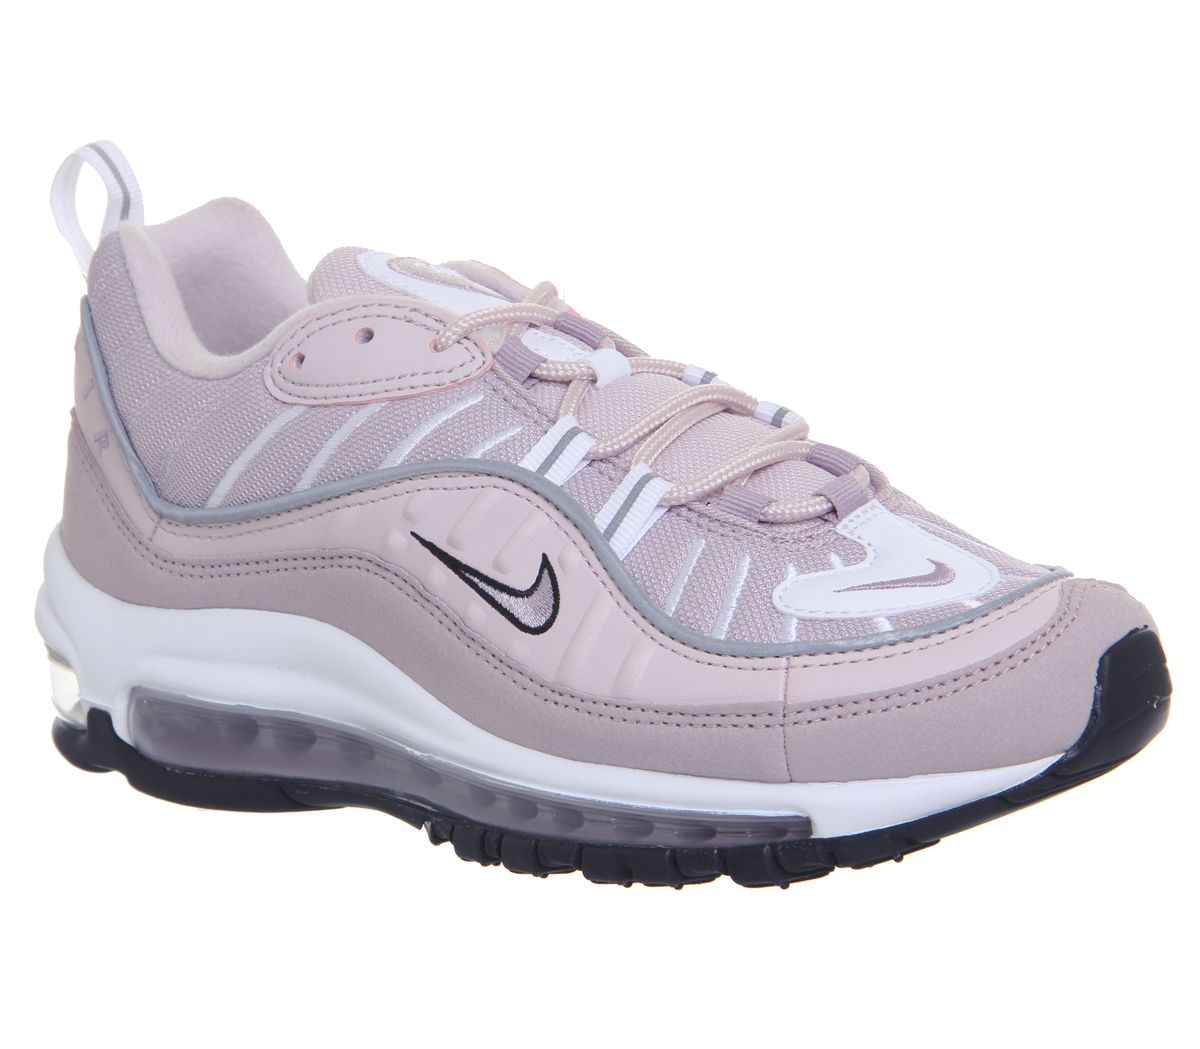 best service e44bf f5471 Air Max 98 Trainers